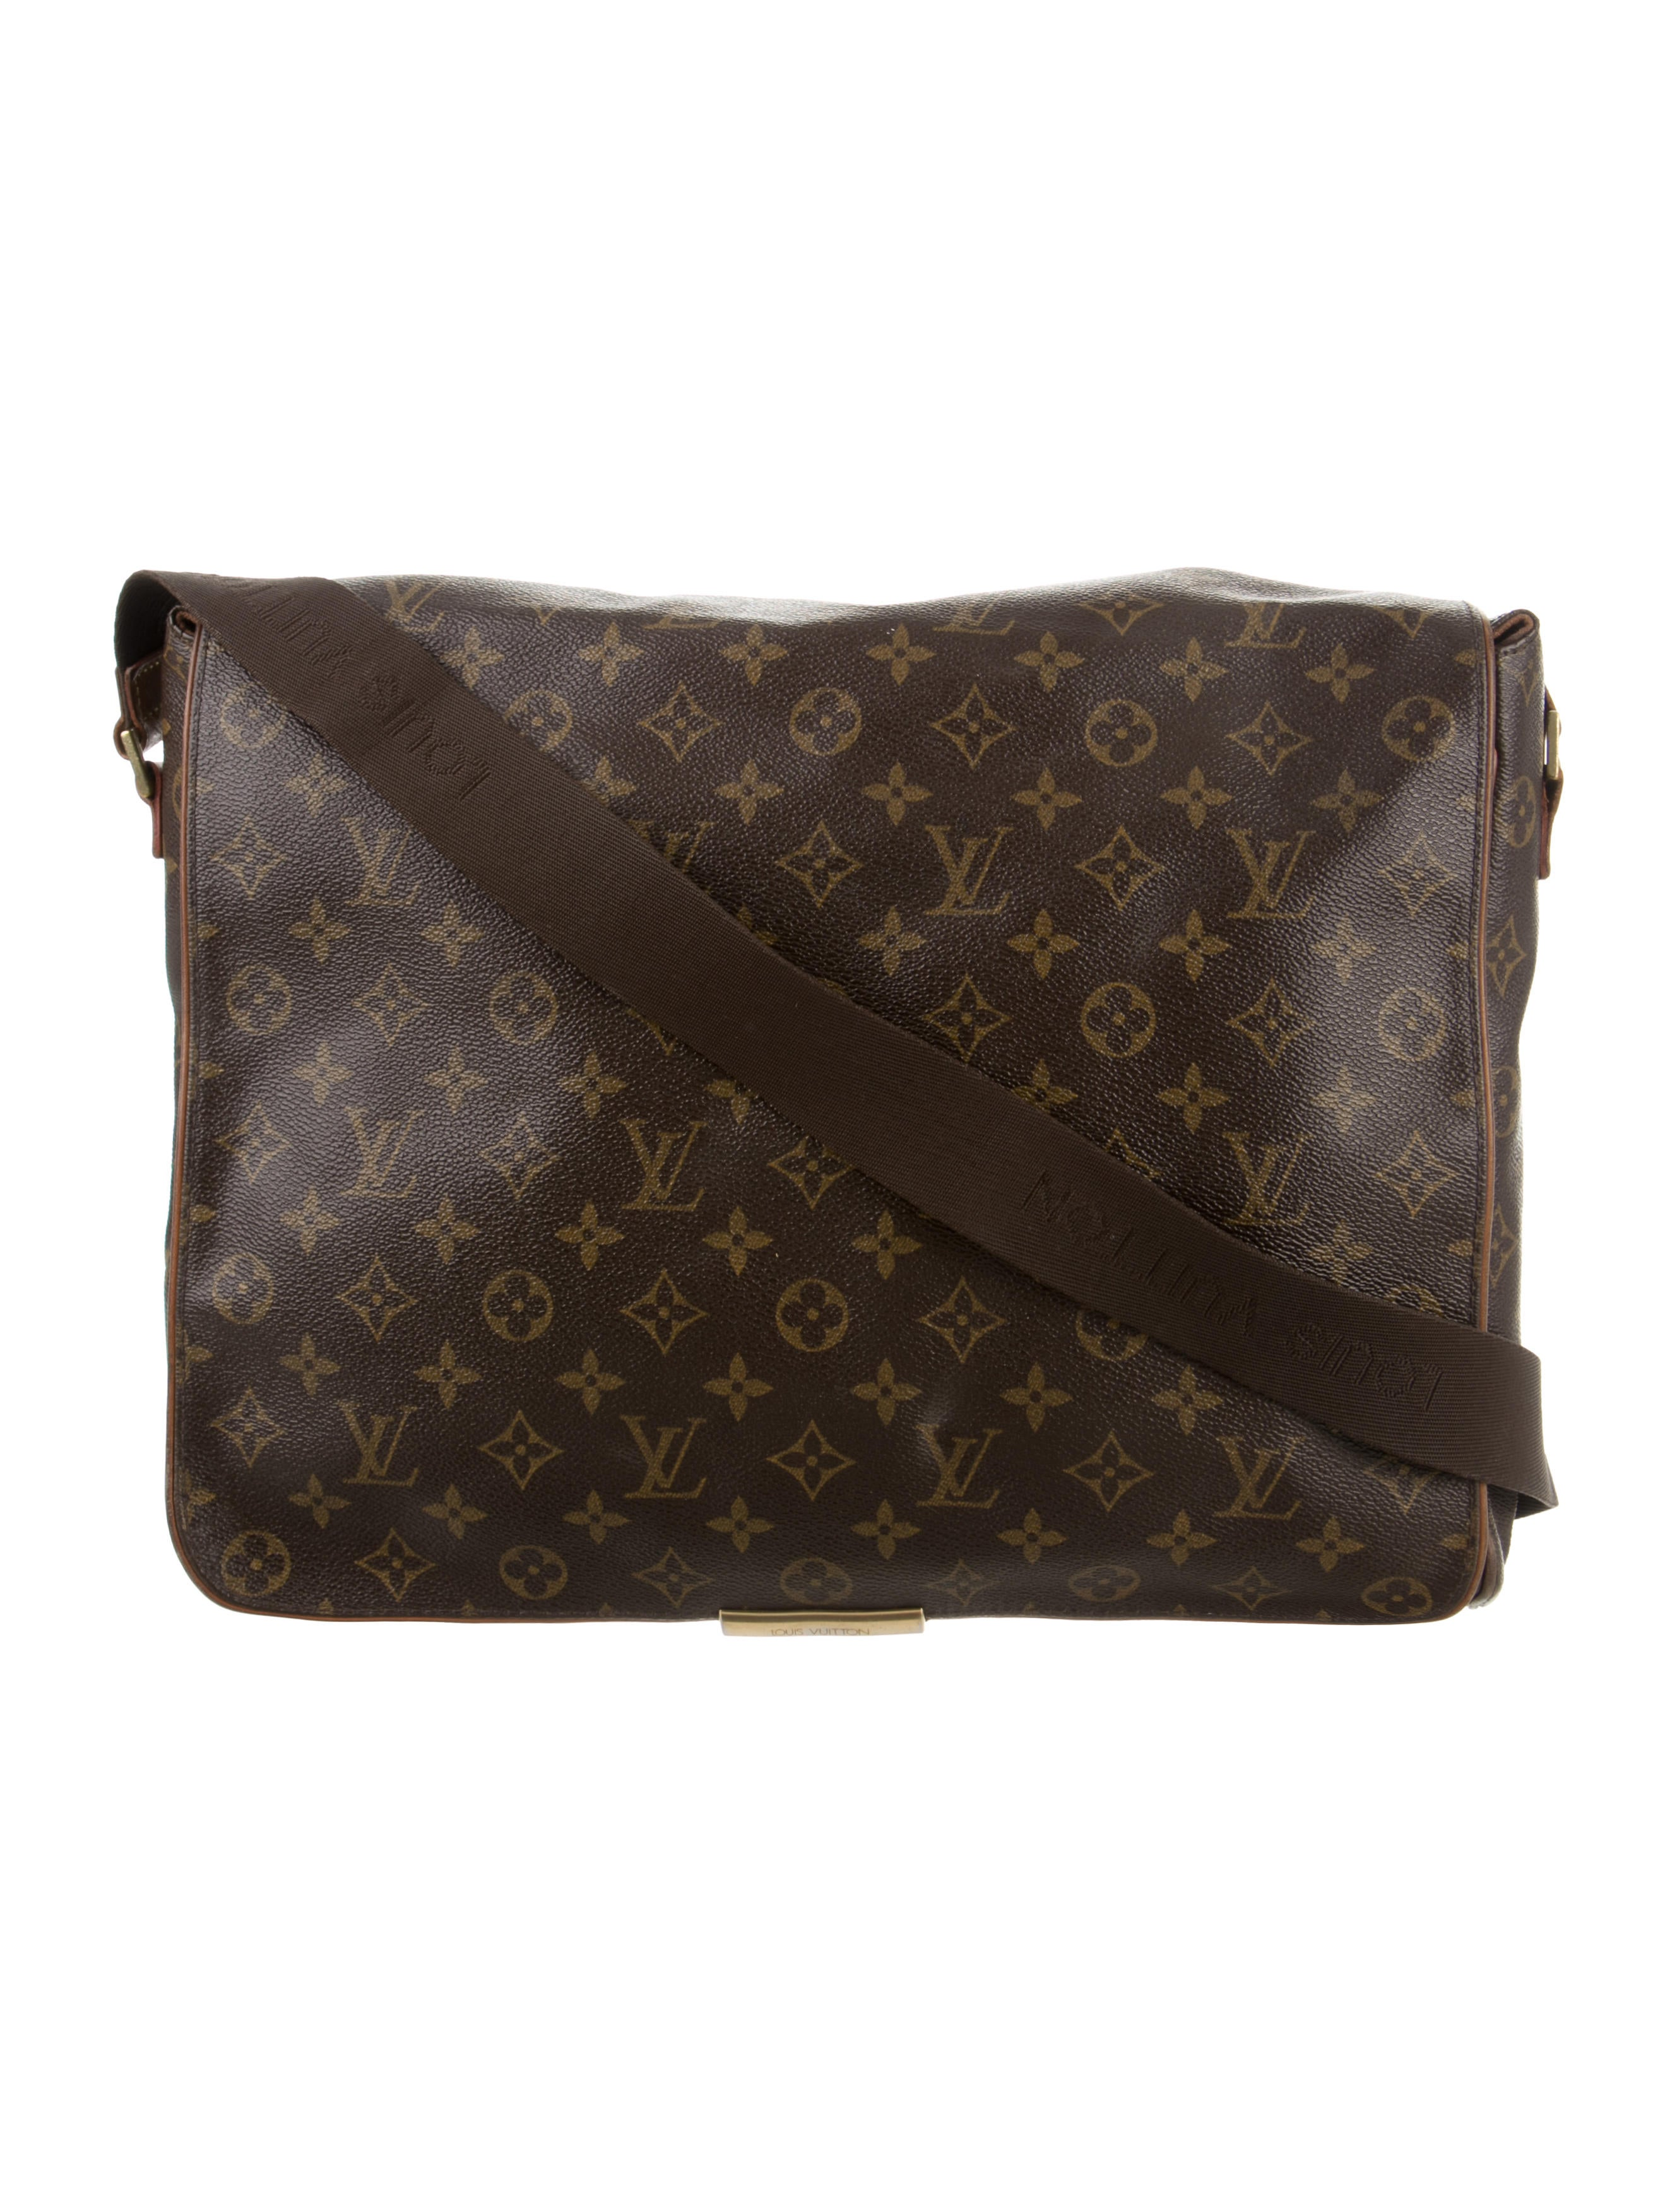 Perfect Odeon Style Messenger Bag LOUIS VUITTON Brown In Leather - 514603